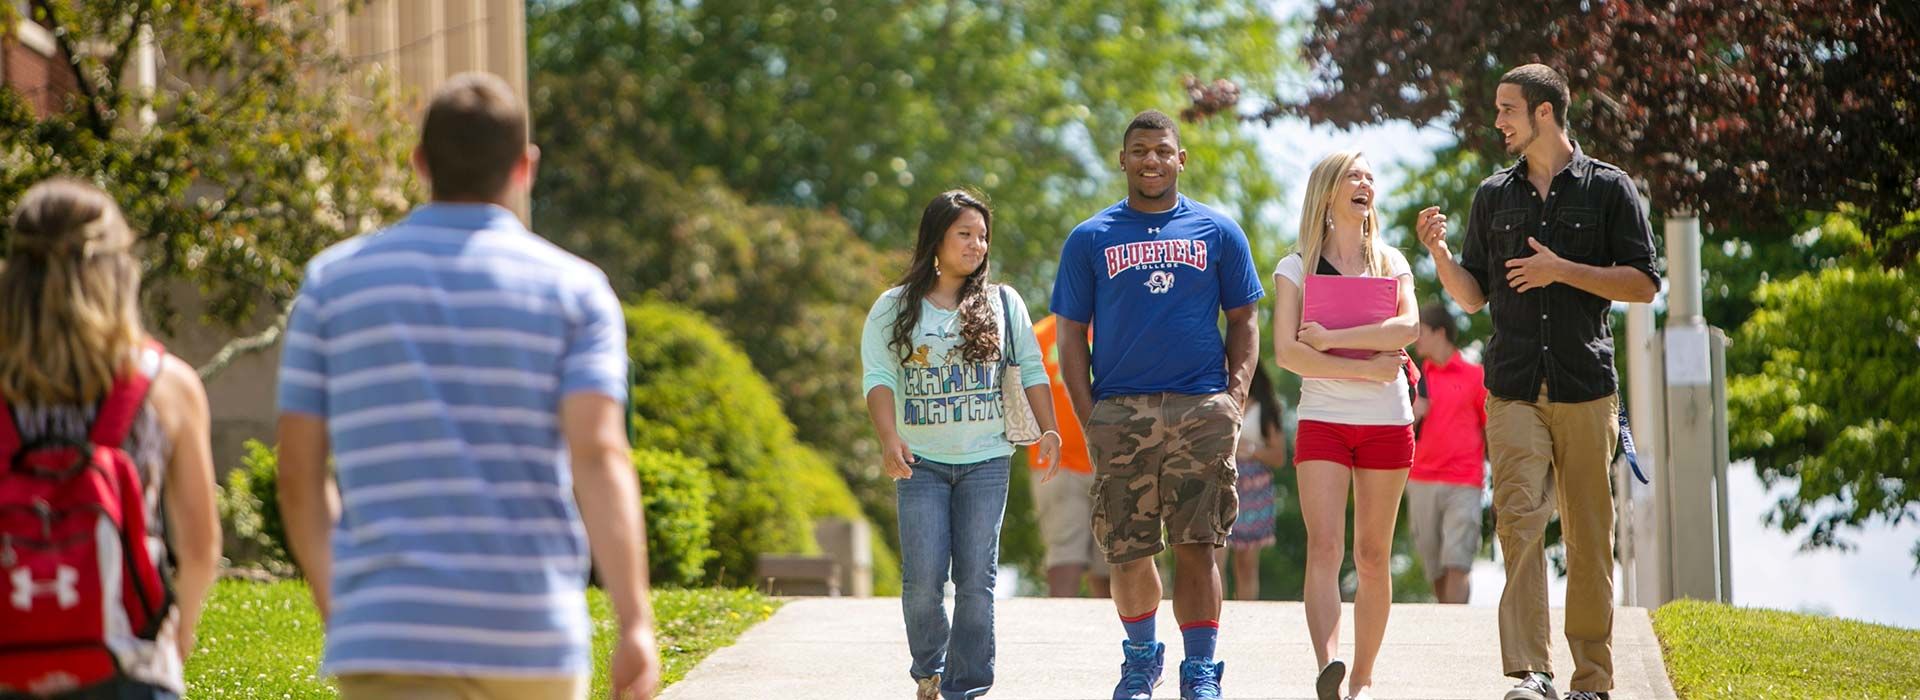 Bluefield campus with students